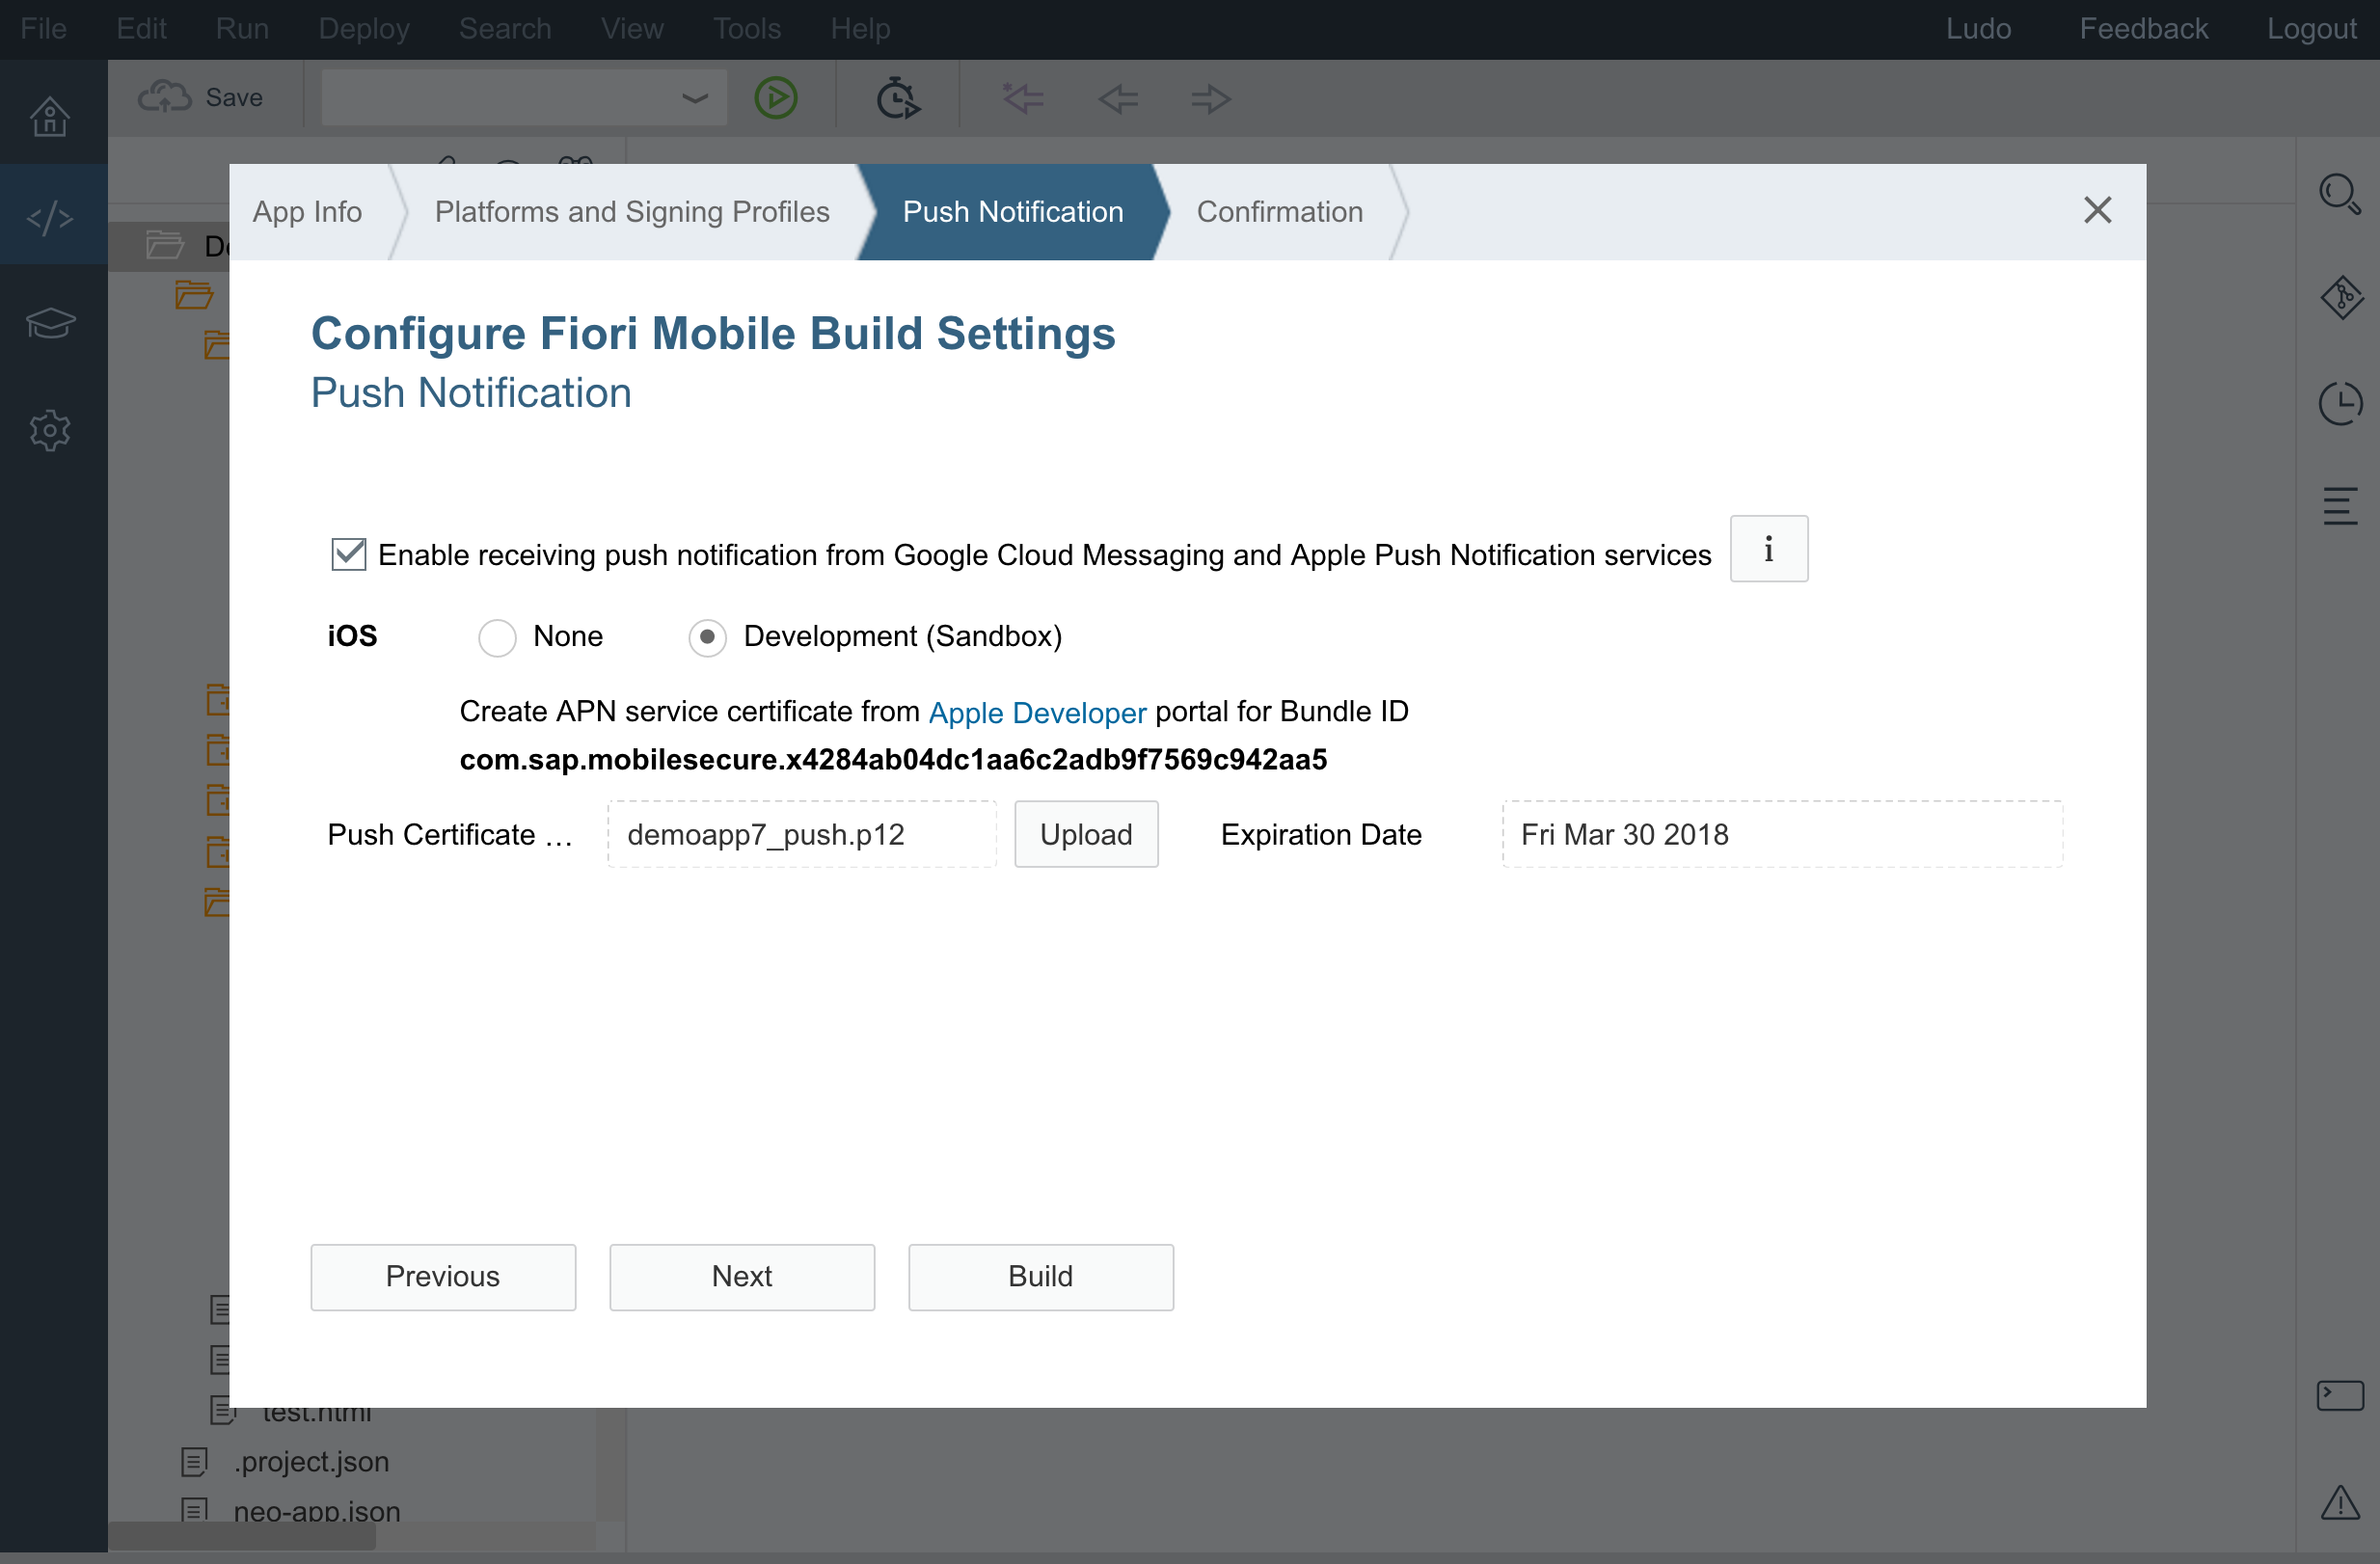 Easily add push notifications to your mobilised fiori app with now that we are done with the configuration we can hit the build button and generate the app in the cloud once the build is done should be in ccuart Choice Image